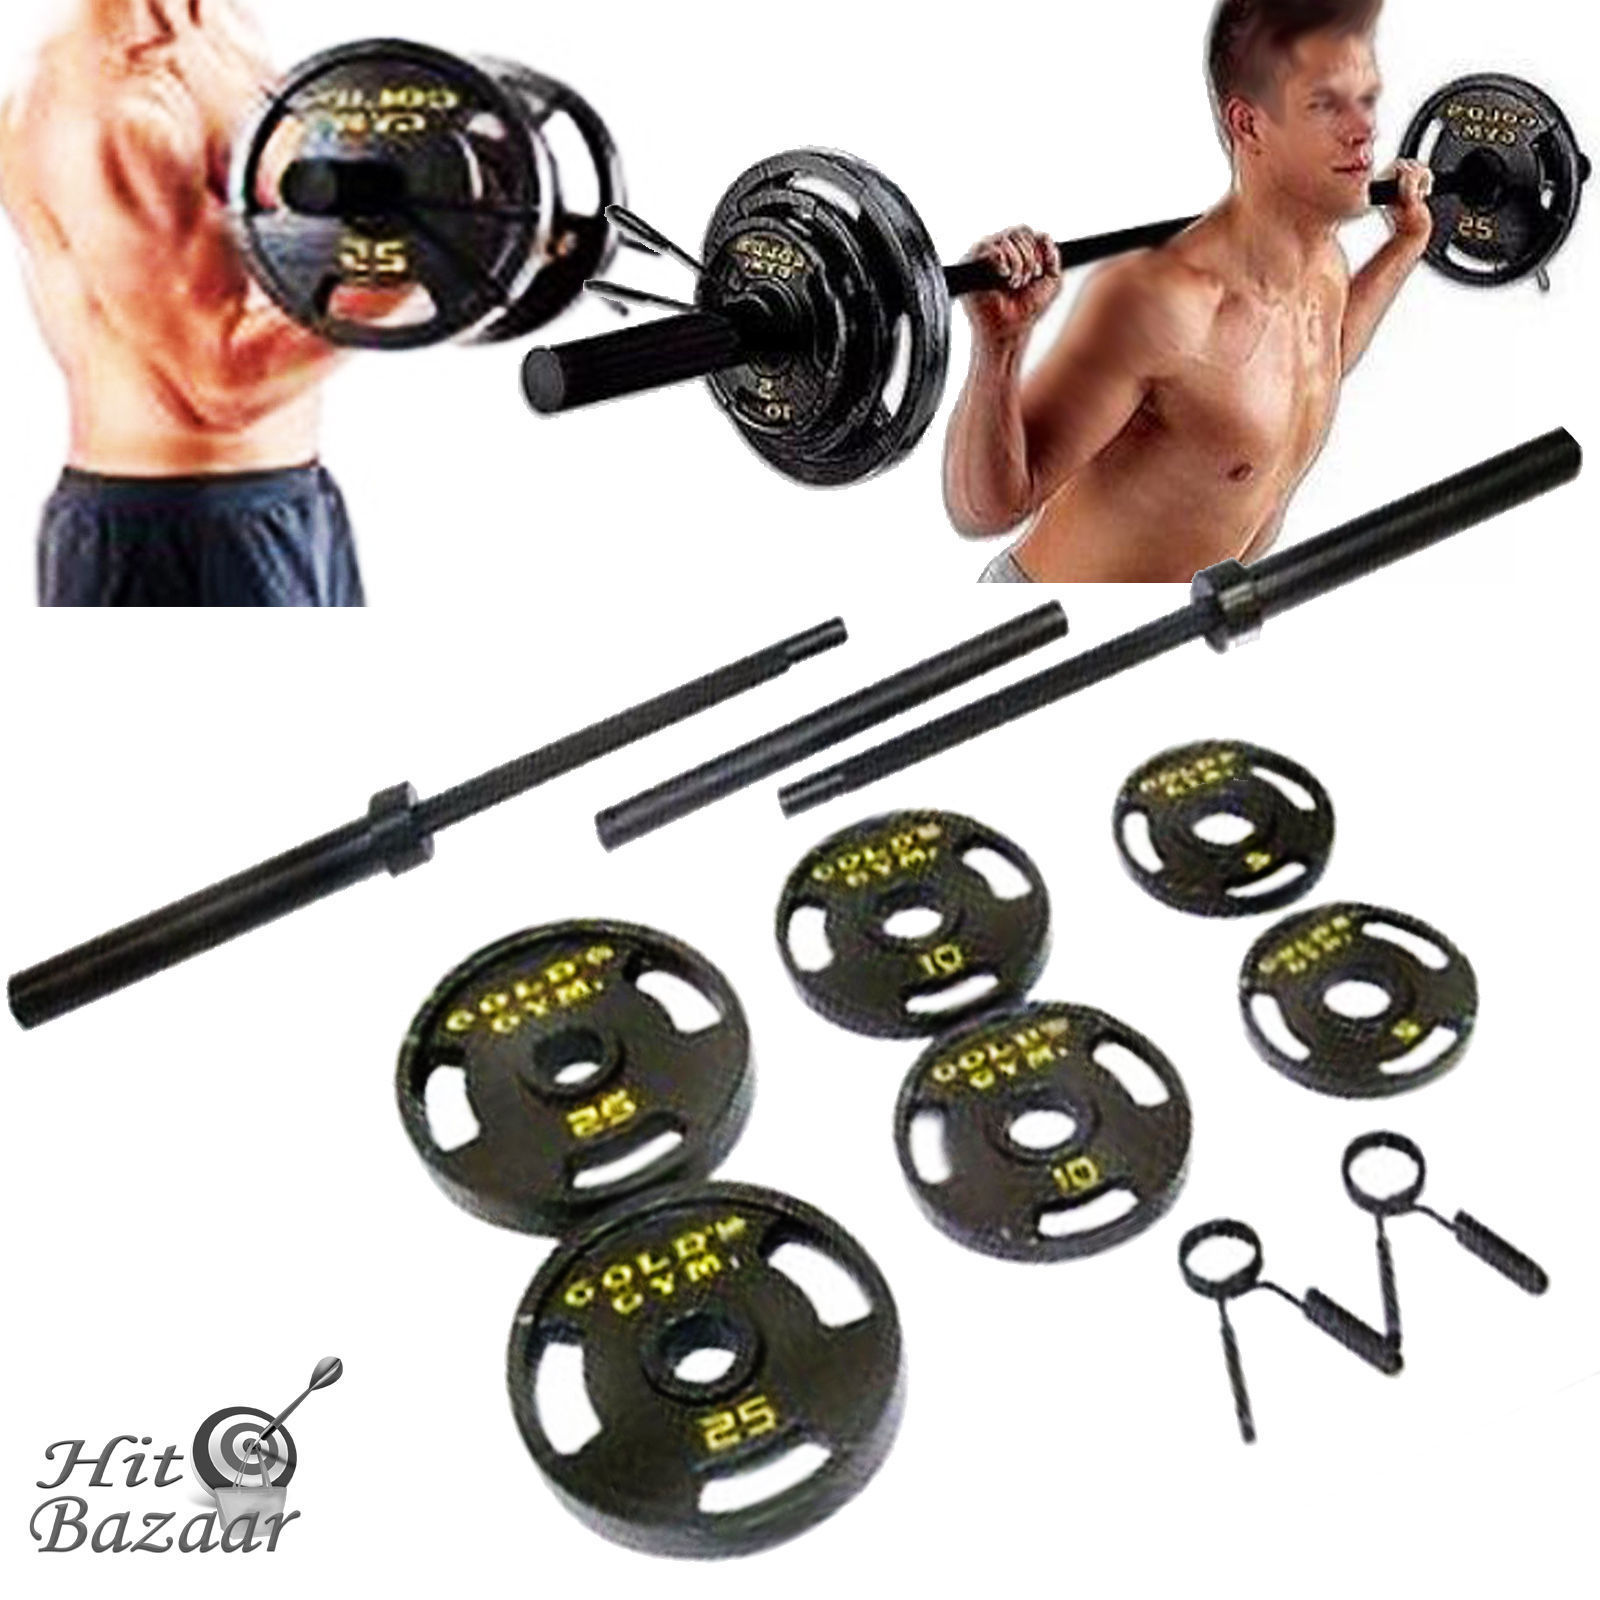 Olympic Weight Set 110 lb Plates Barbell Workout Gym ...